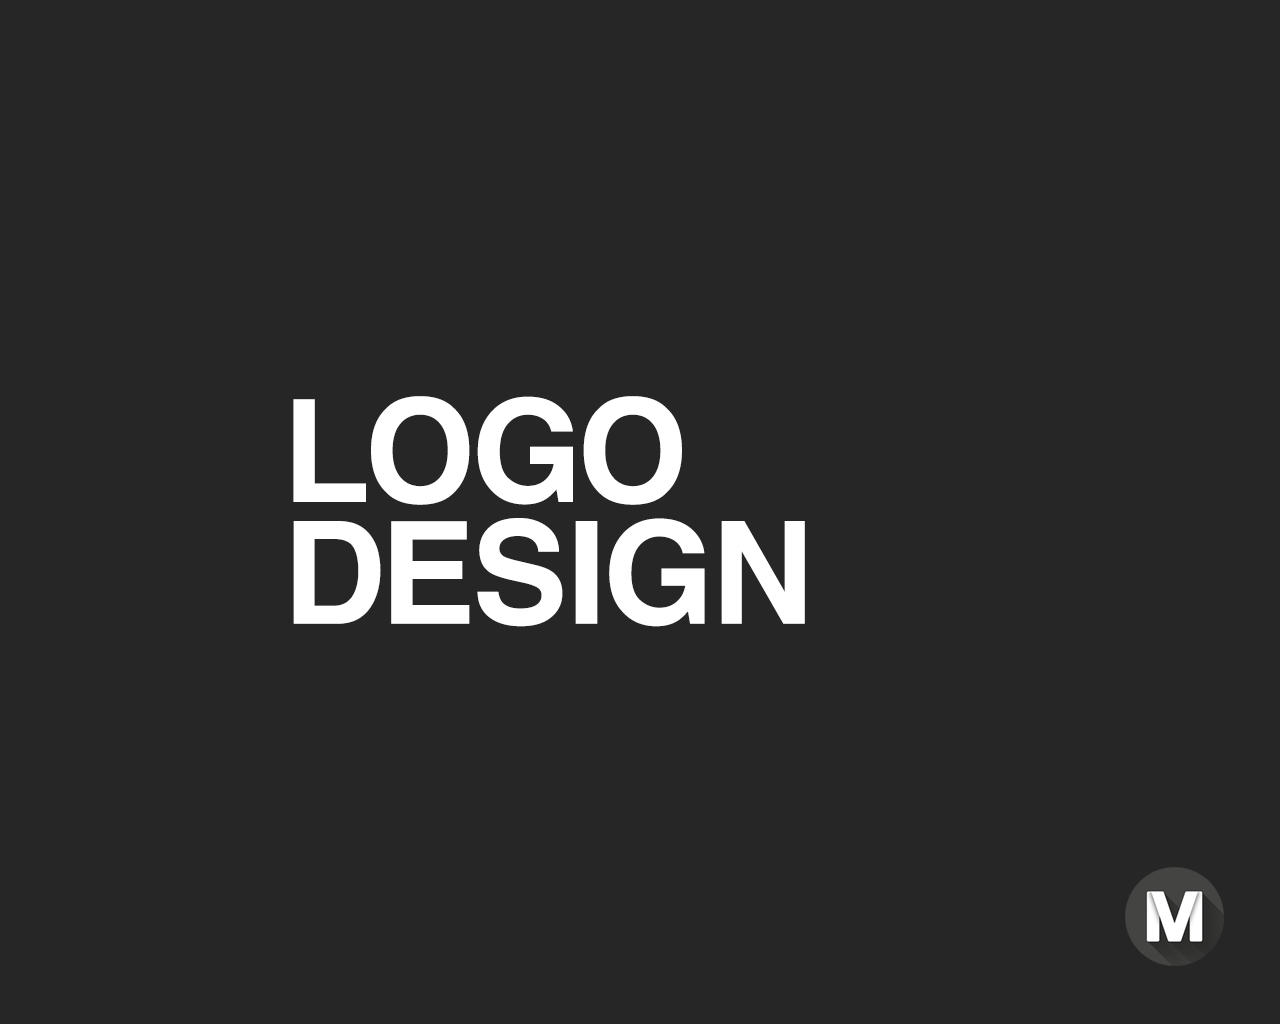 Professional Logo Design By Marcusvaz On Envato Studio